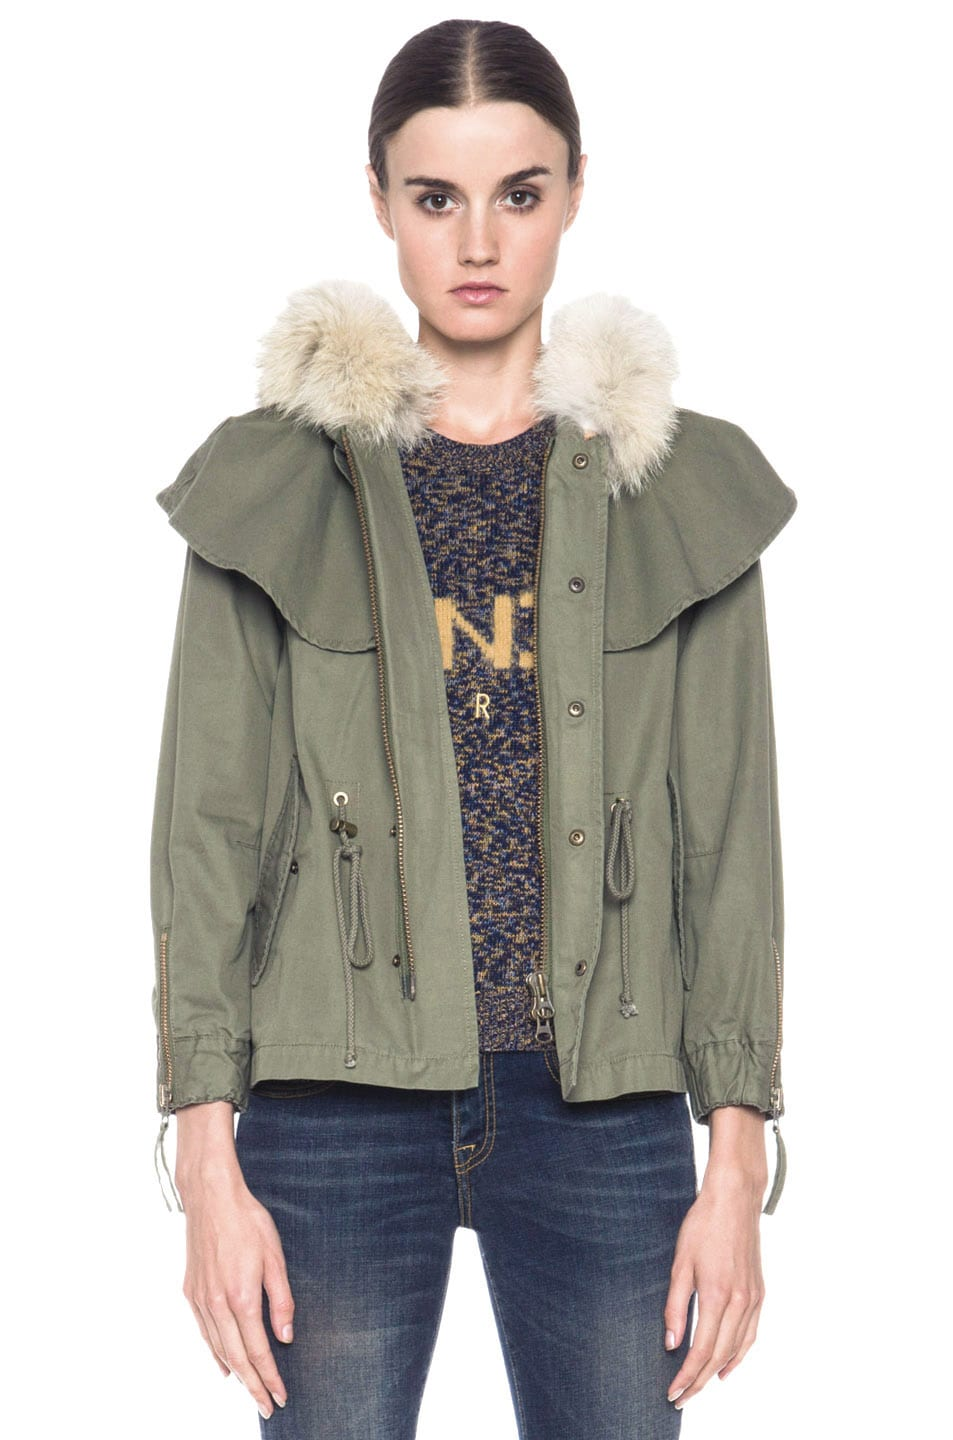 Image 1 of Skaist Taylor Cropped Cape Cotton Jacket with Fur in Army Green